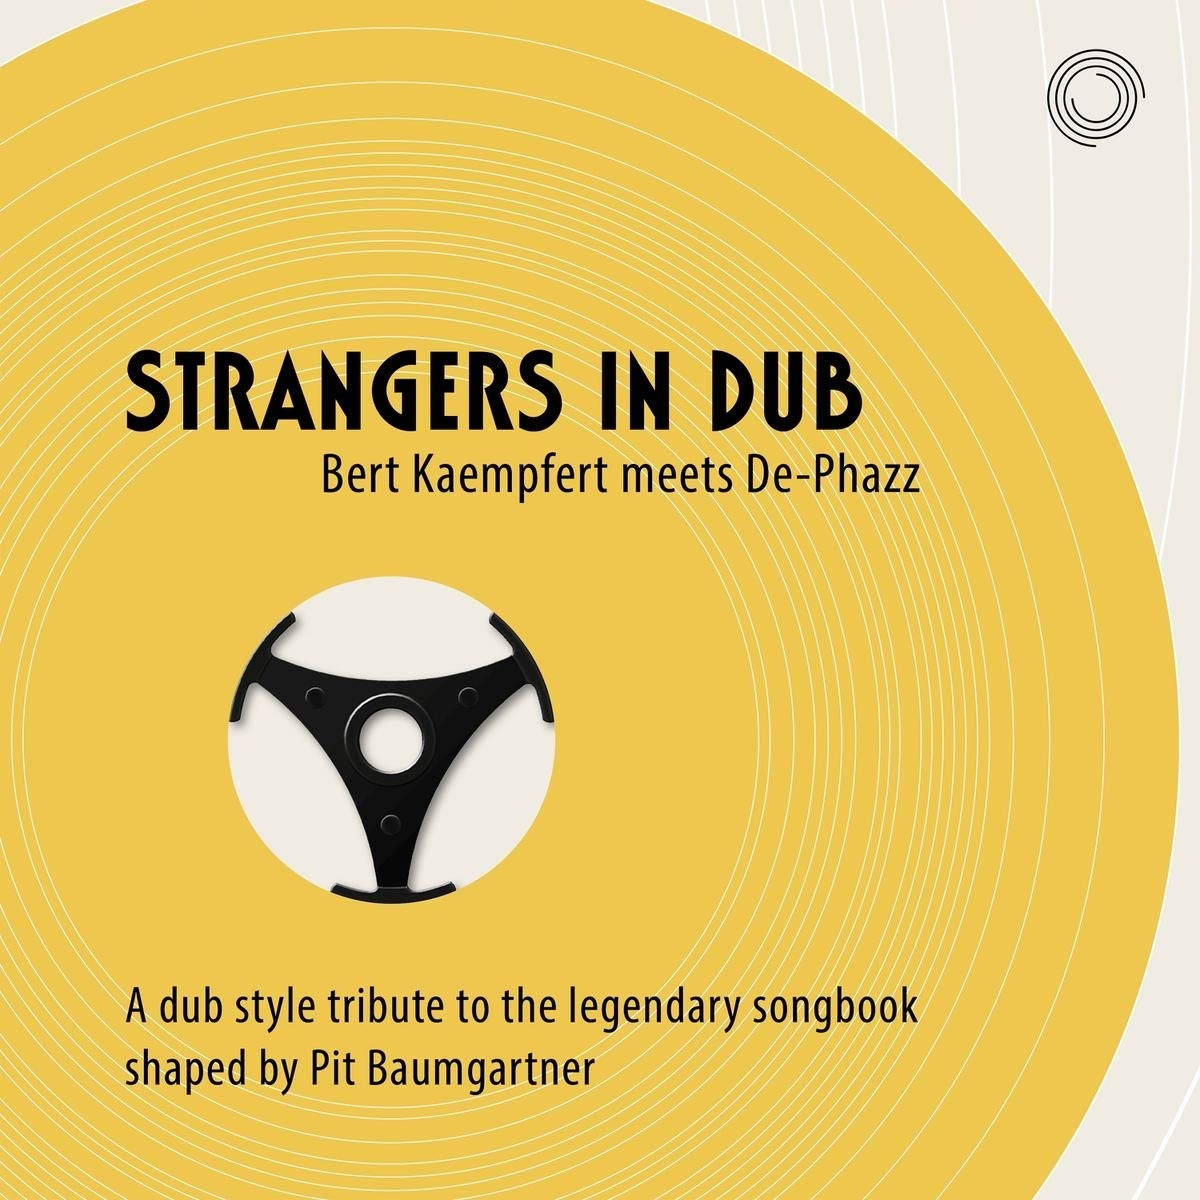 world reg 02 19 StrangersDub